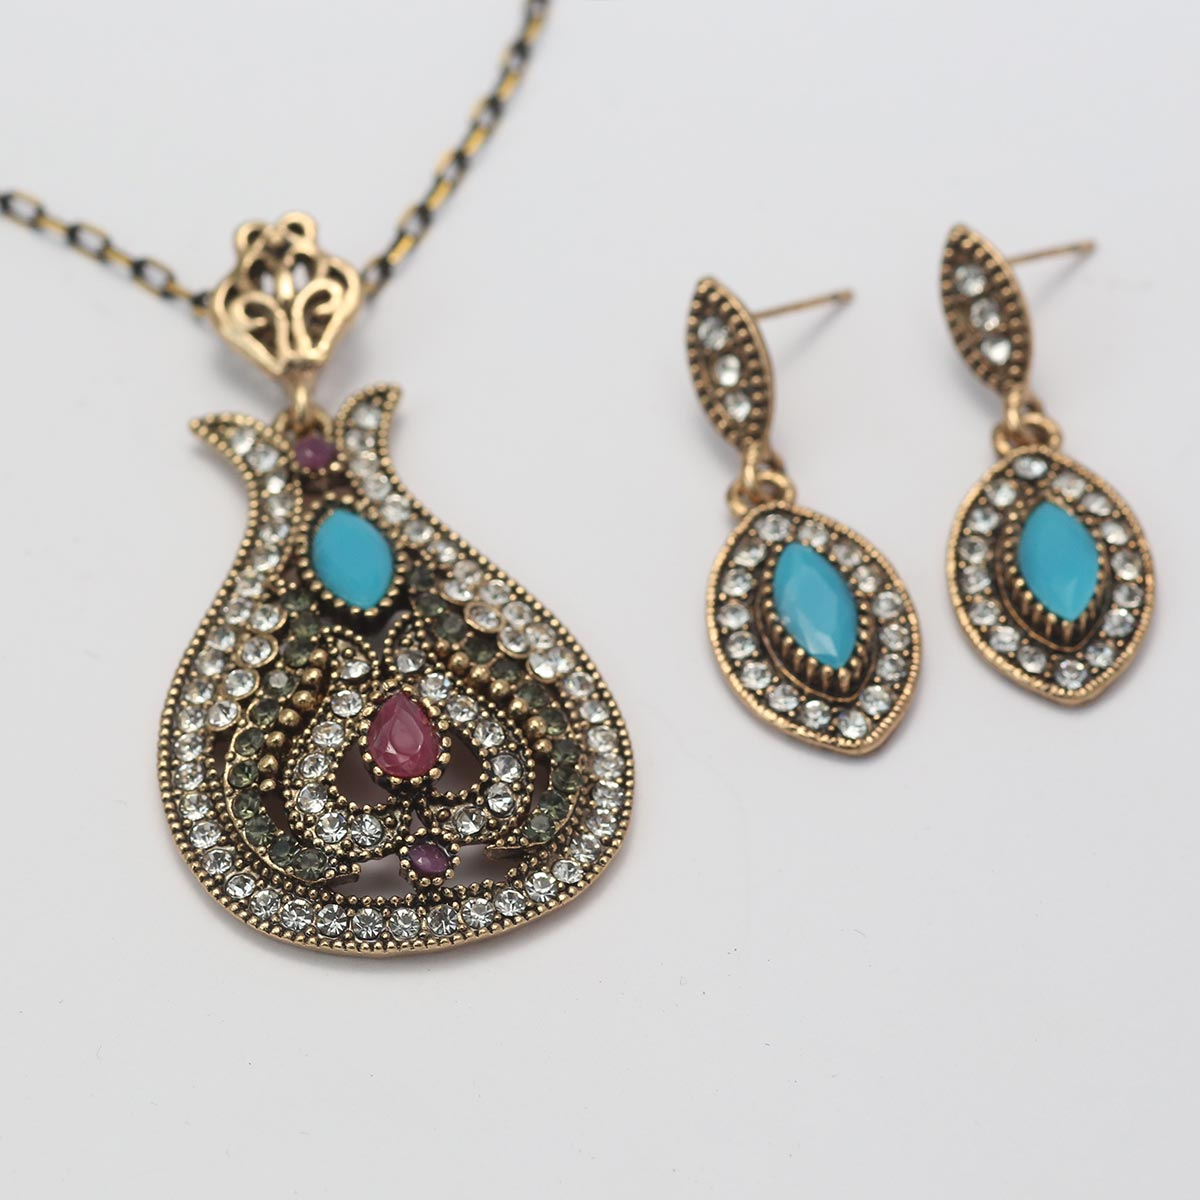 Beautiful Antique Turkish Designs Necklace Set For Ladies (PS-134) Gallery Image 1